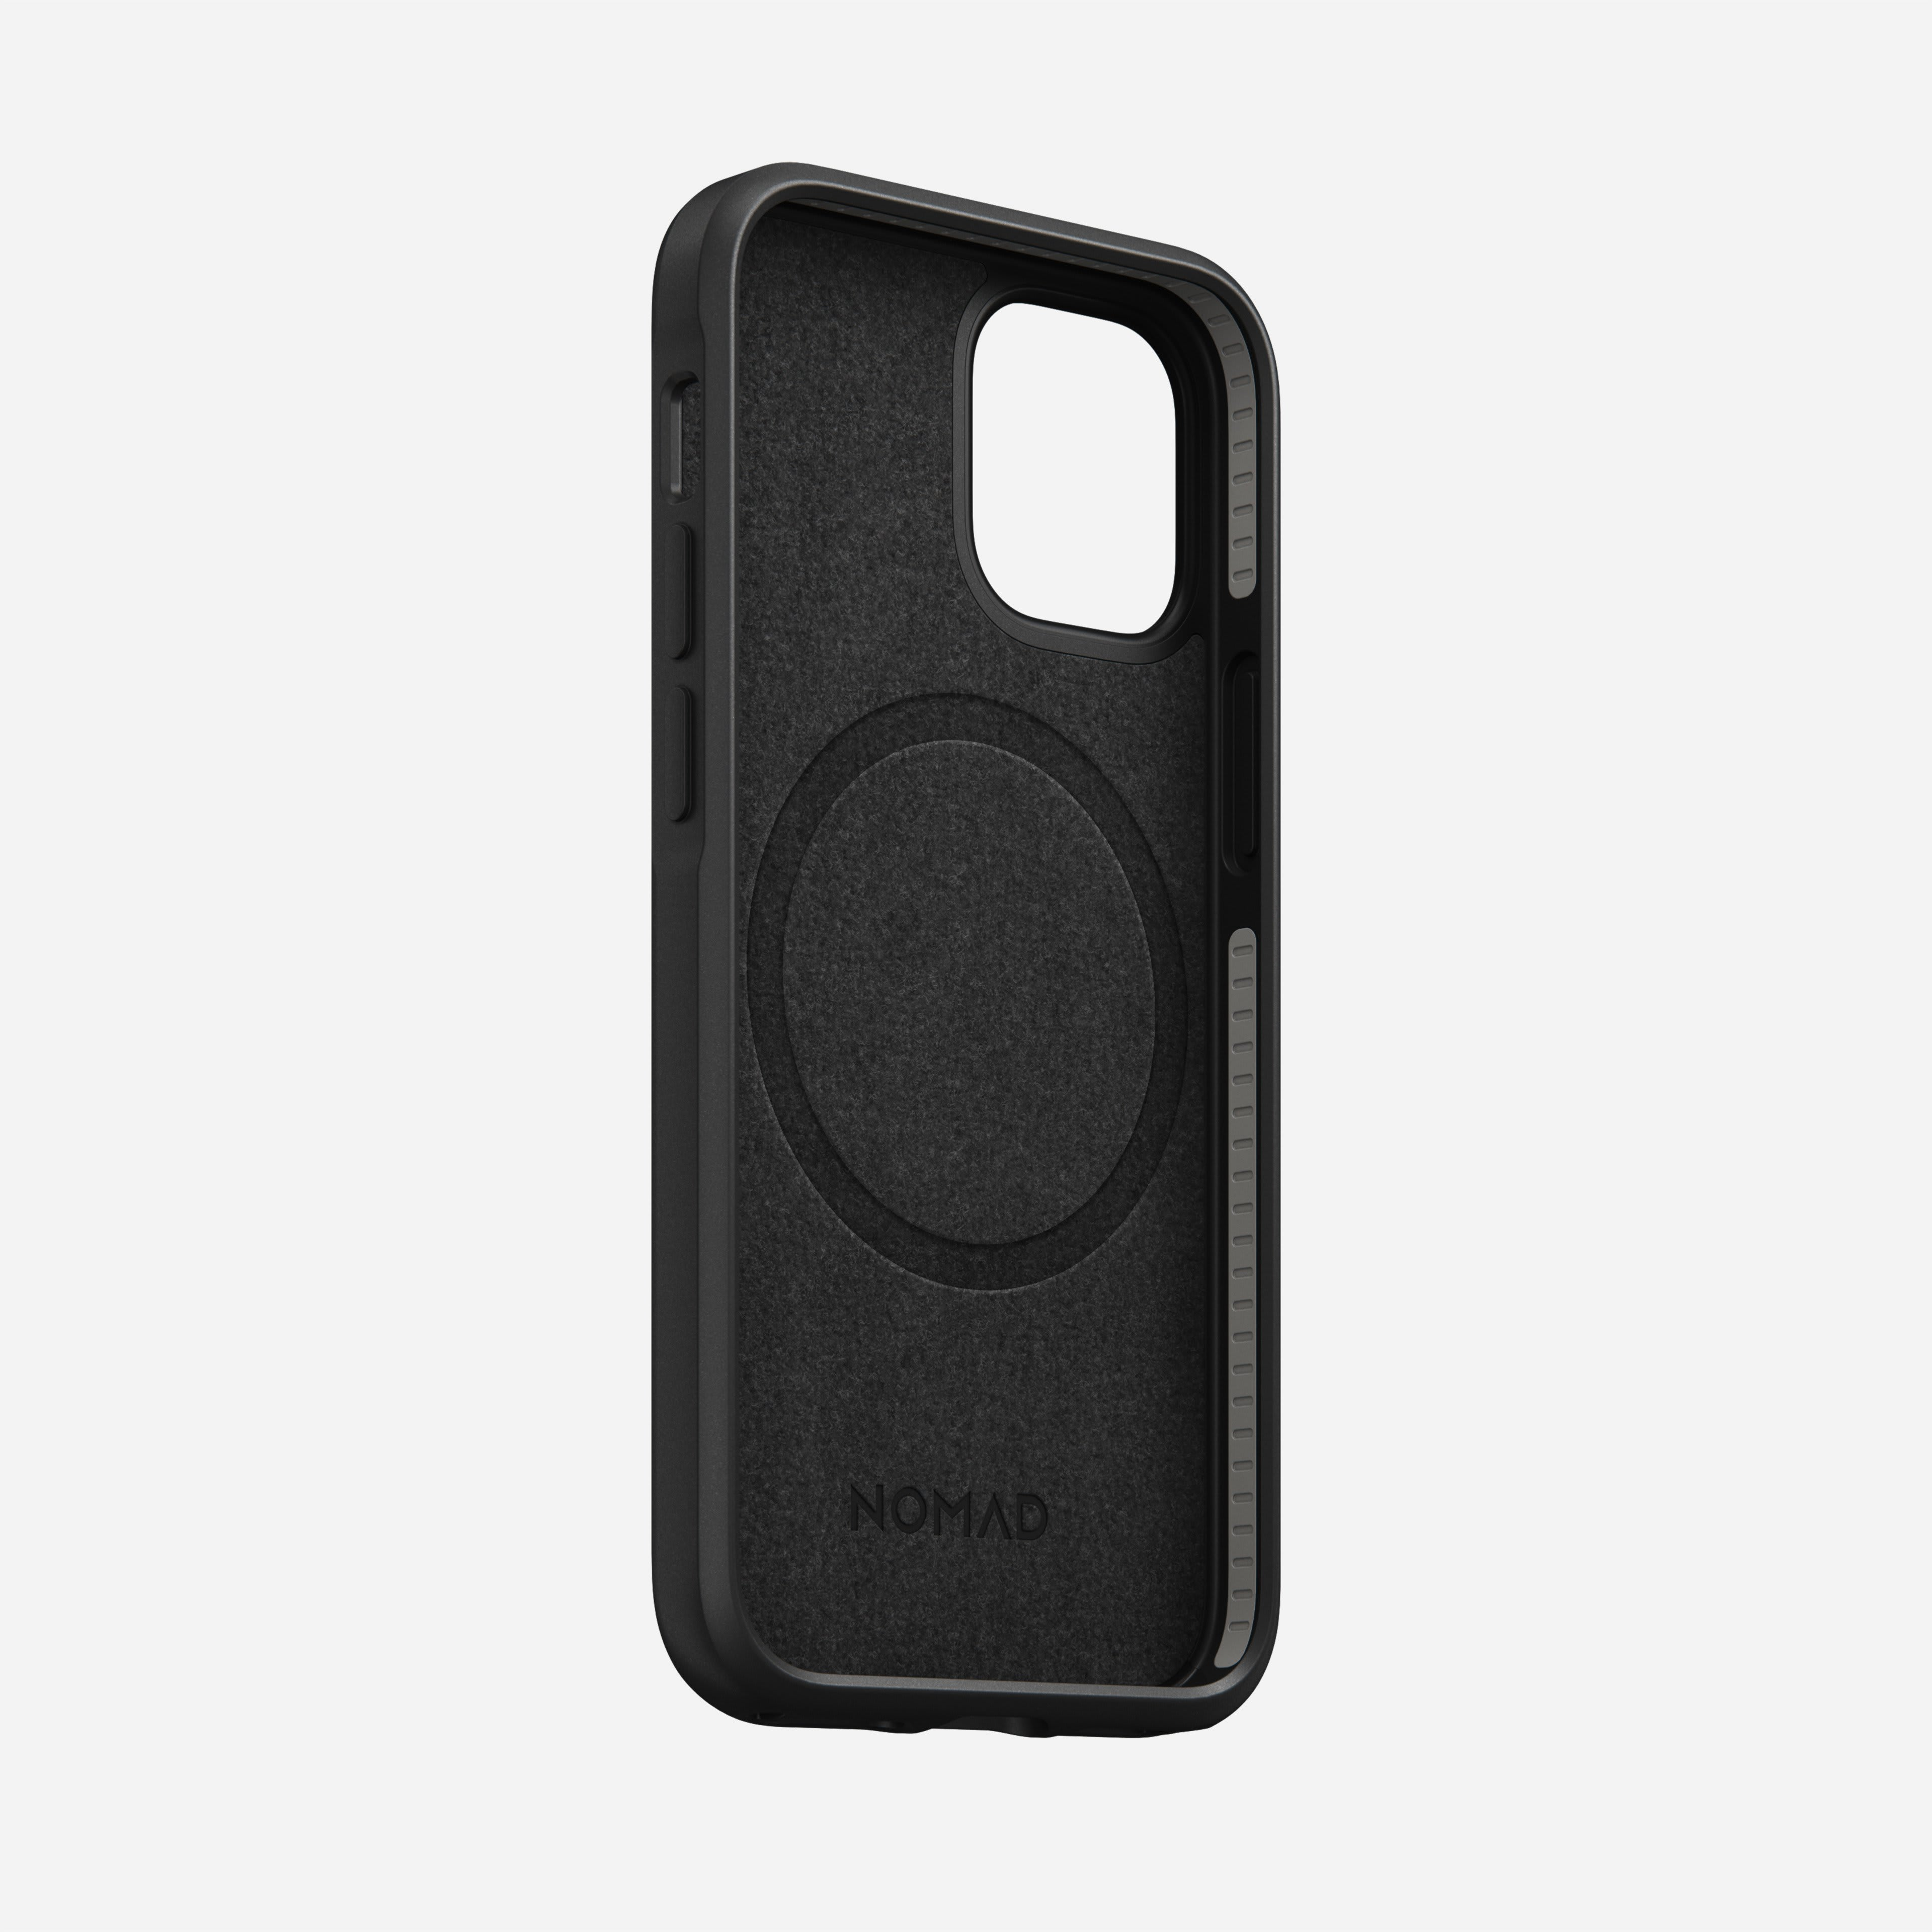 Rugged case magsafe horween leather black iphone 12 mini